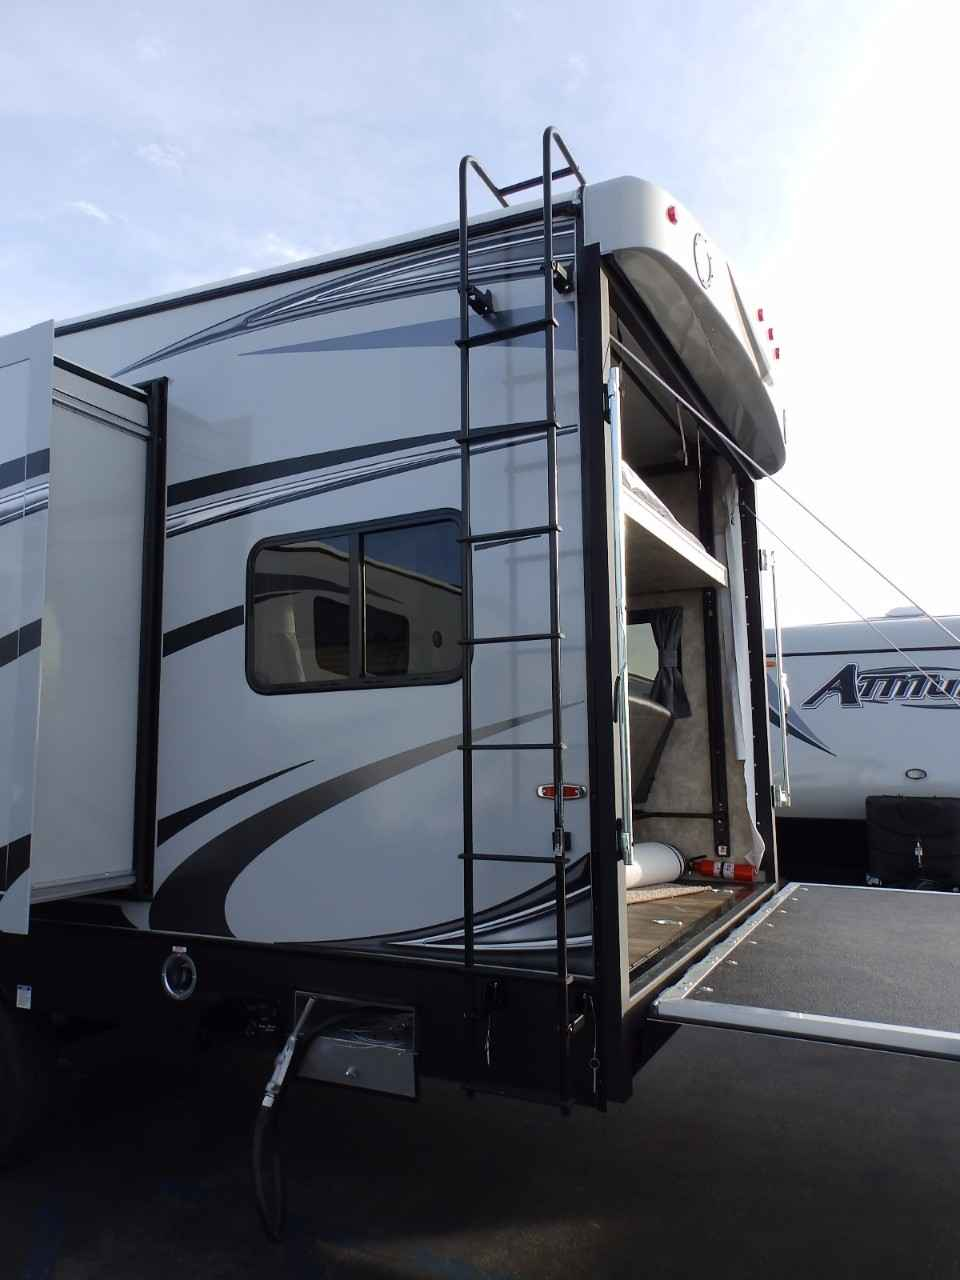 2018 New Eclipse Recreational Vehicles Attitude 28sag 2